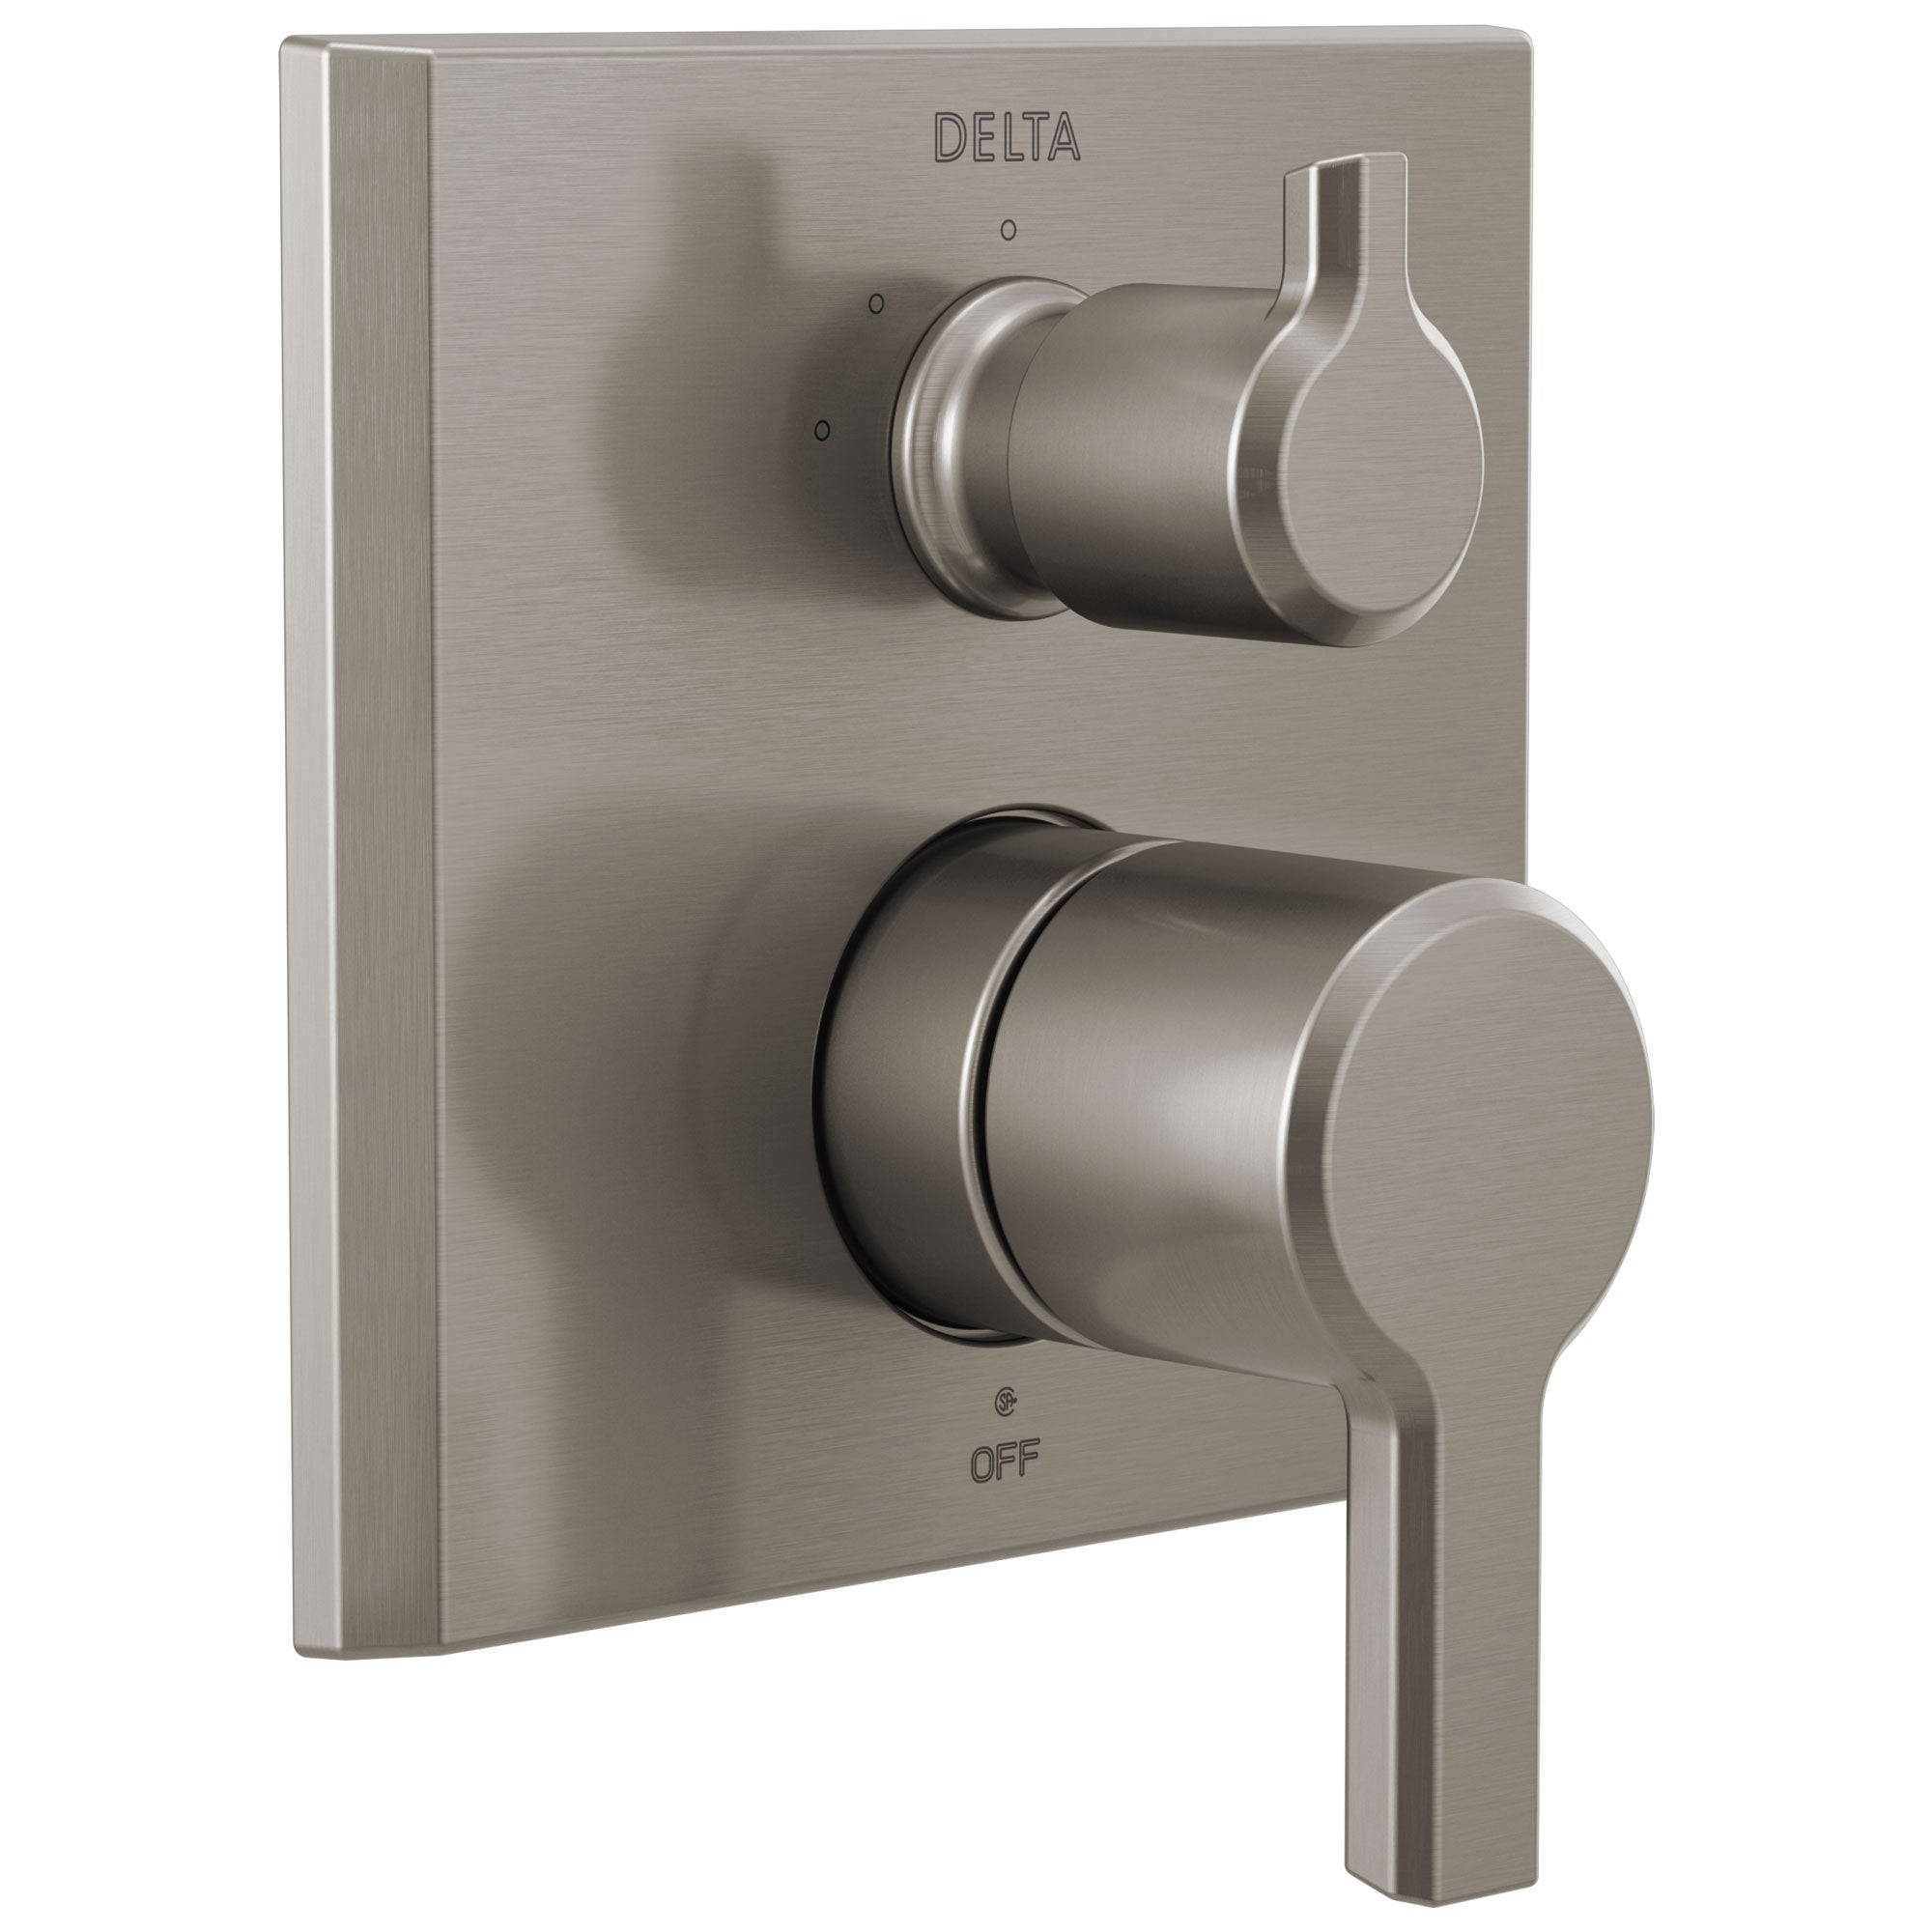 Delta Pivotal Stainless Steel Finish 14 Series Shower Faucet System Control with 3-Setting Integrated Diverter Includes Valve and Handles D3759V